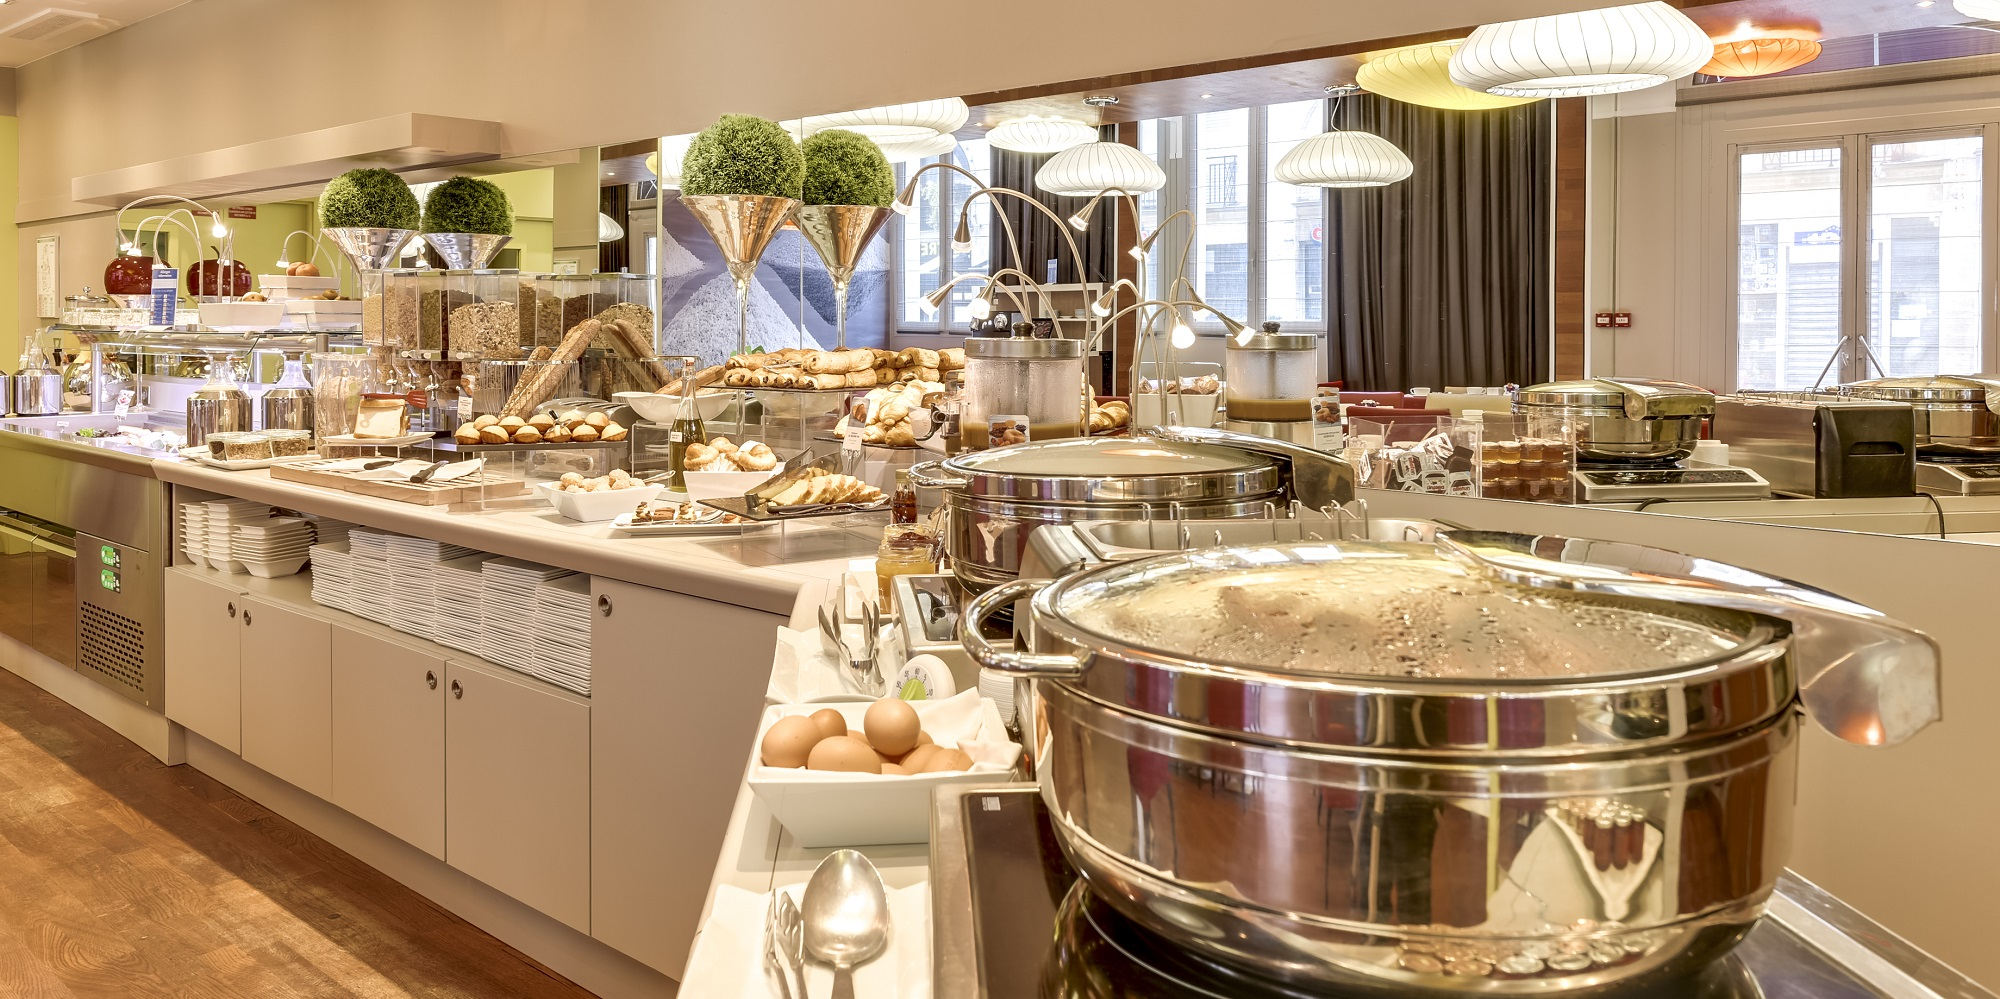 Brunch Mercure Nantes Centre Gd Hôtel (44000 Nantes)